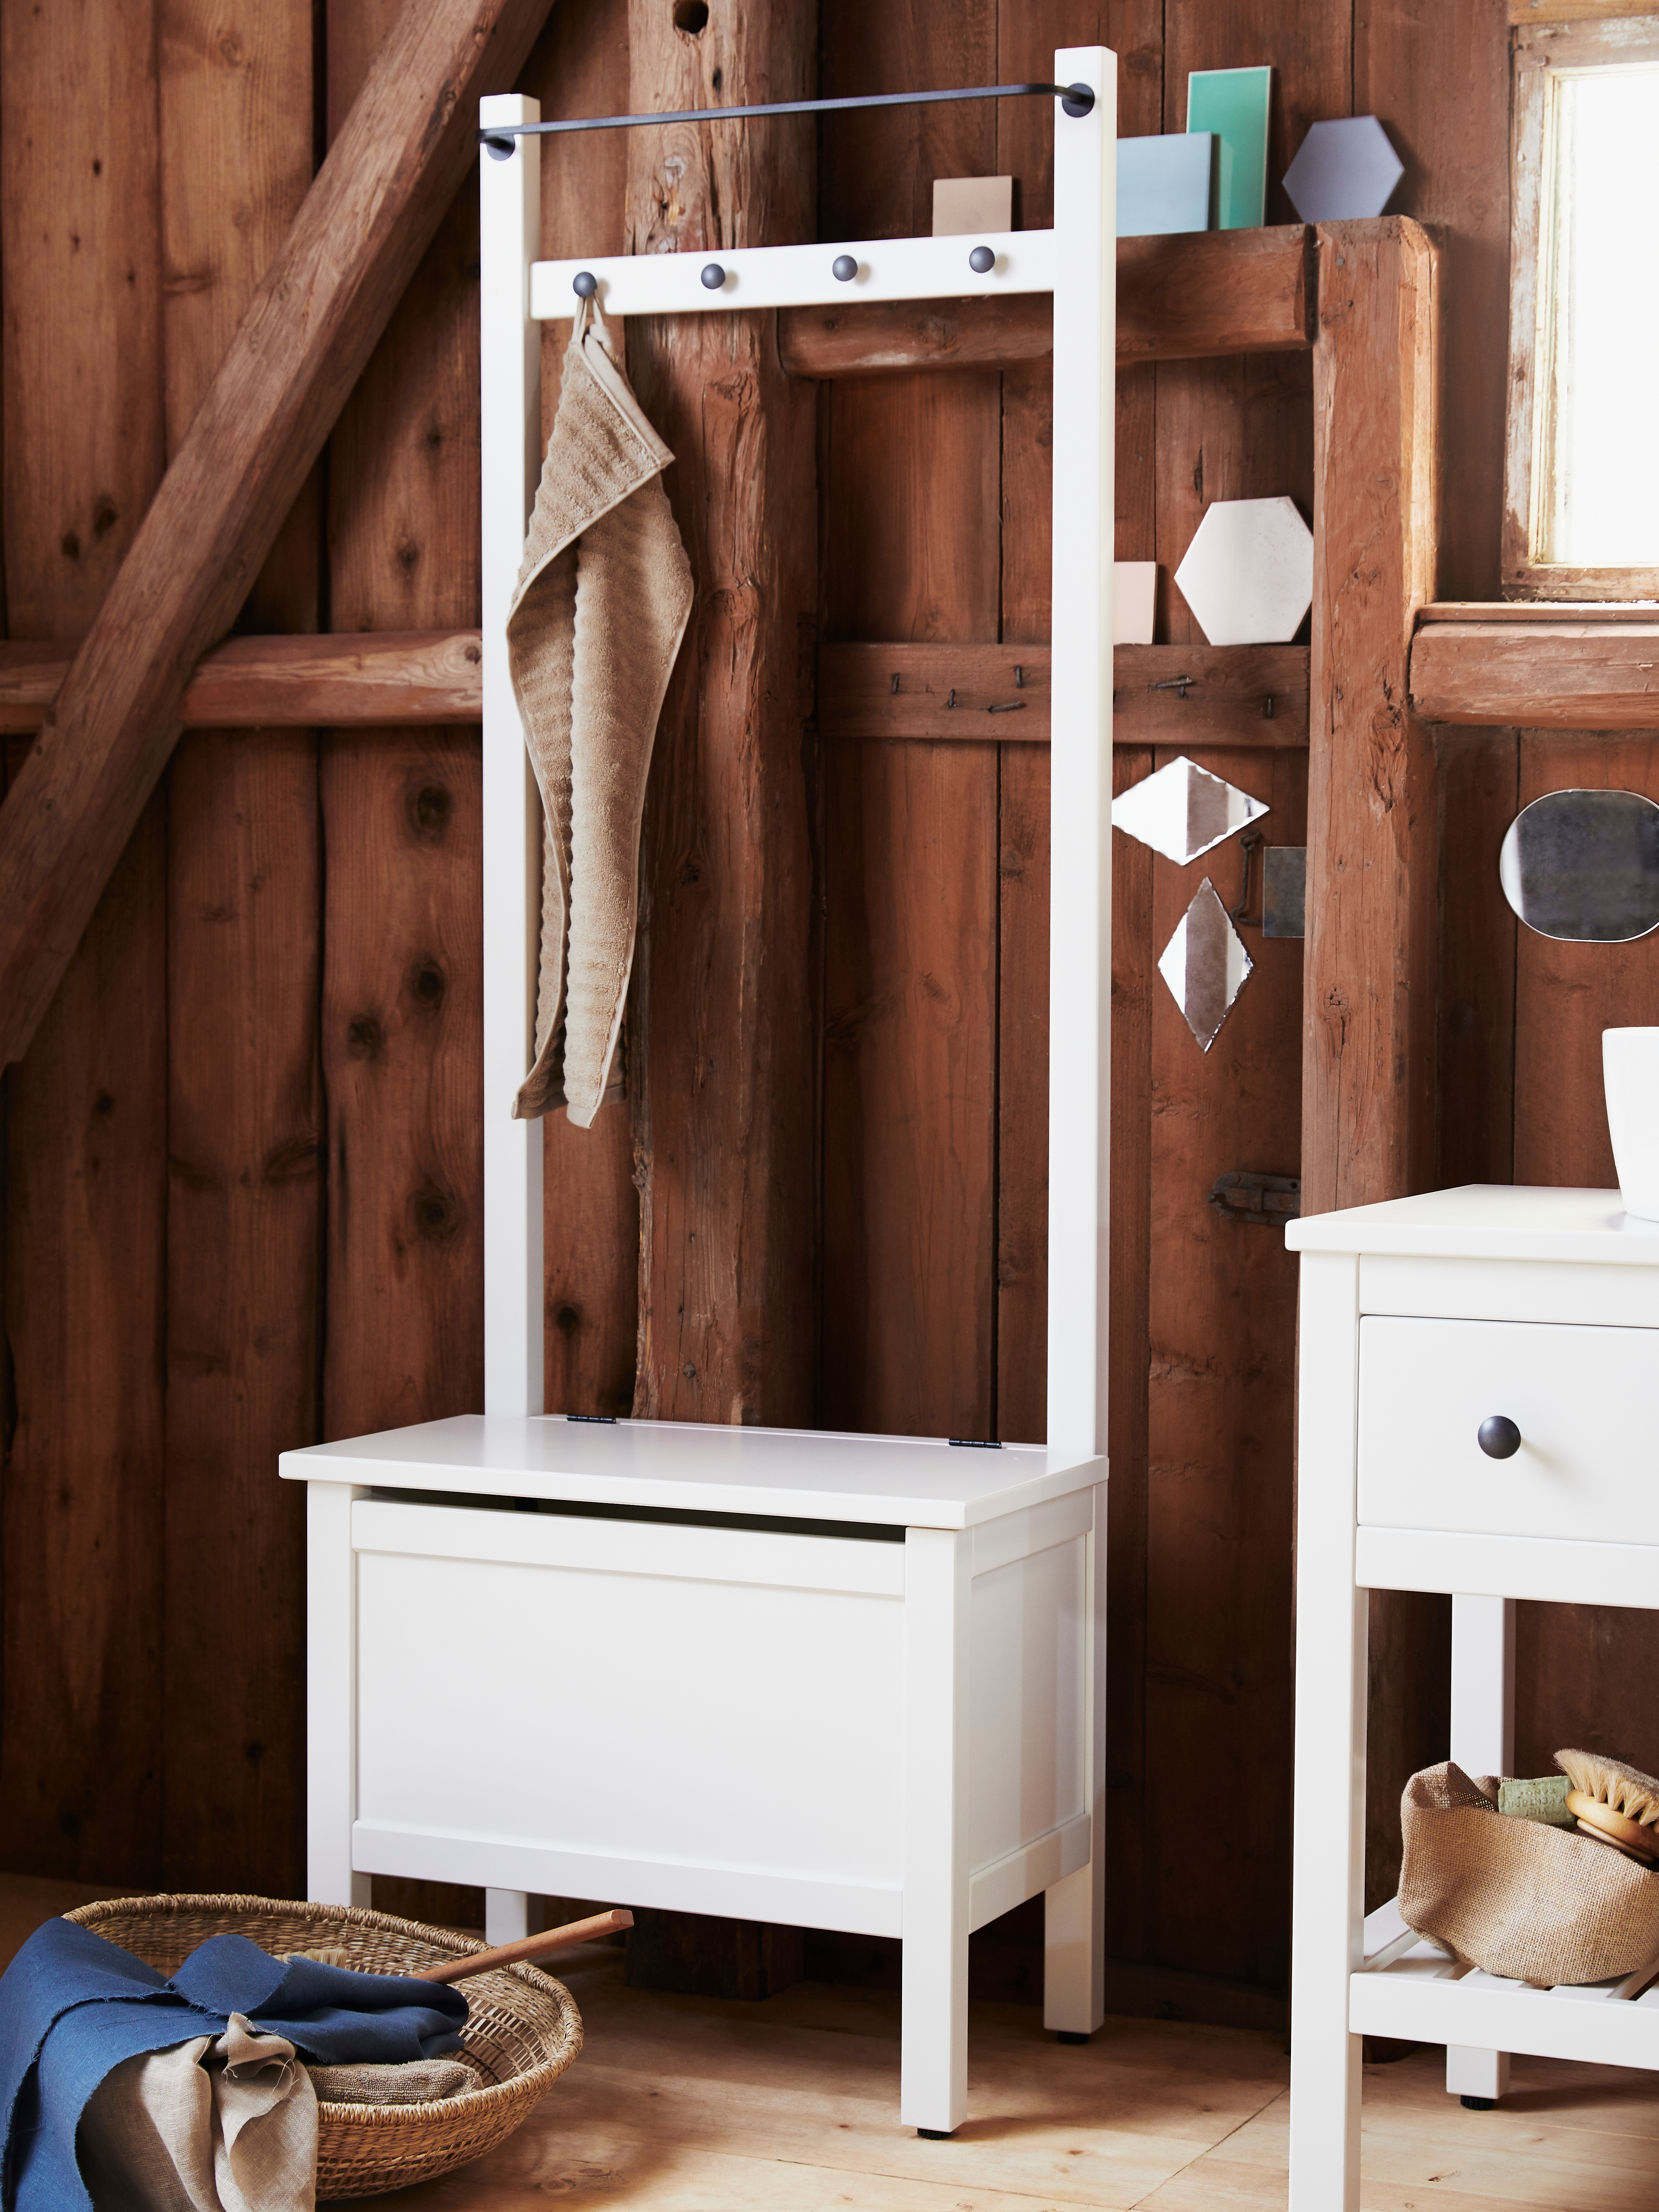 A wood-panelled bathroom wall that has a white HEMNES storage bench, with towel rail and four hooks, and a towel on one hook.